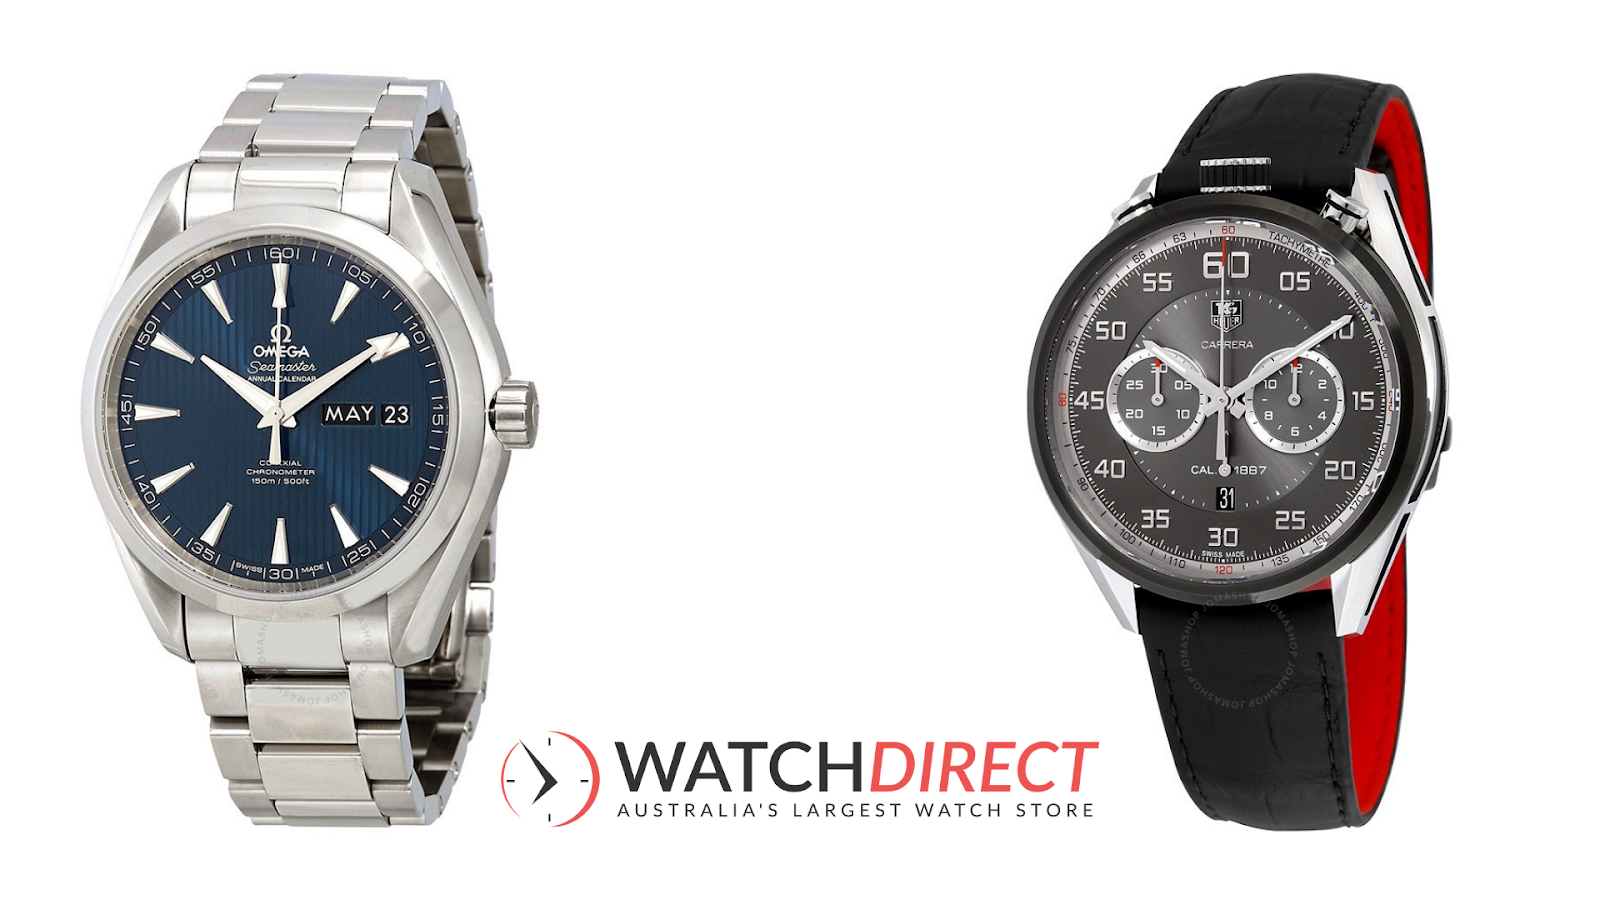 It's a designer thing, darling, with theTag Heuer Carrera Automatic Chronograph Black Dial Black Leather Men's Watch and Gucci G-Timeless Automatic Silver Dial Men's Watch.